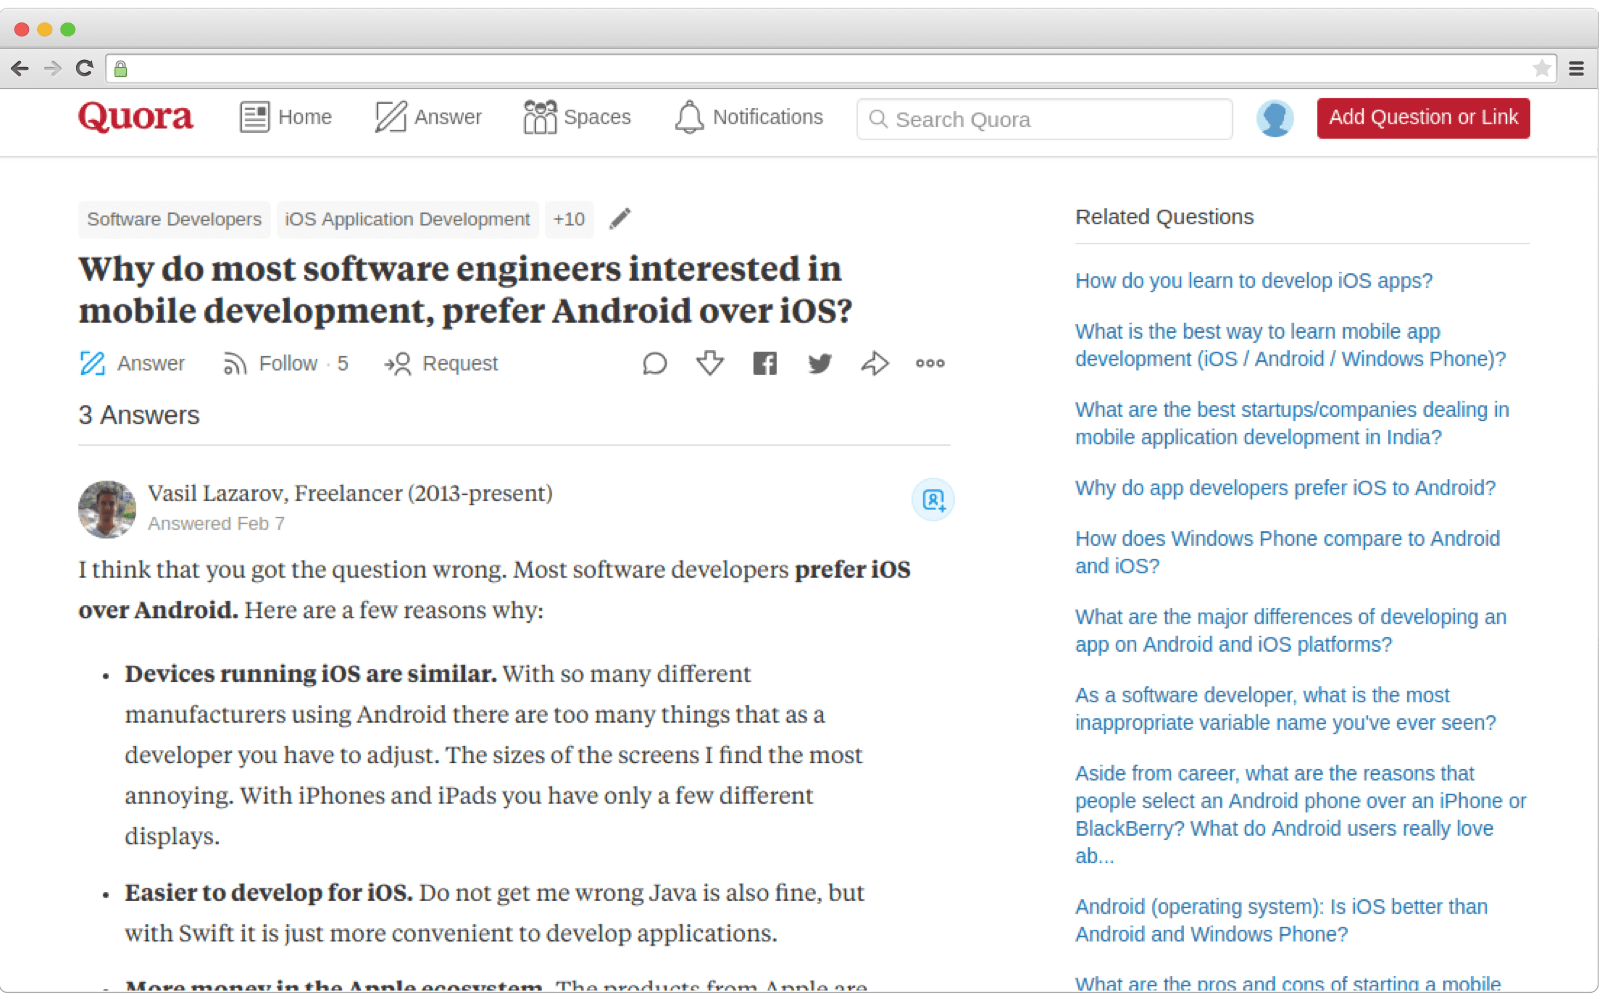 How to create a Q&A website like Quora. Related Questions